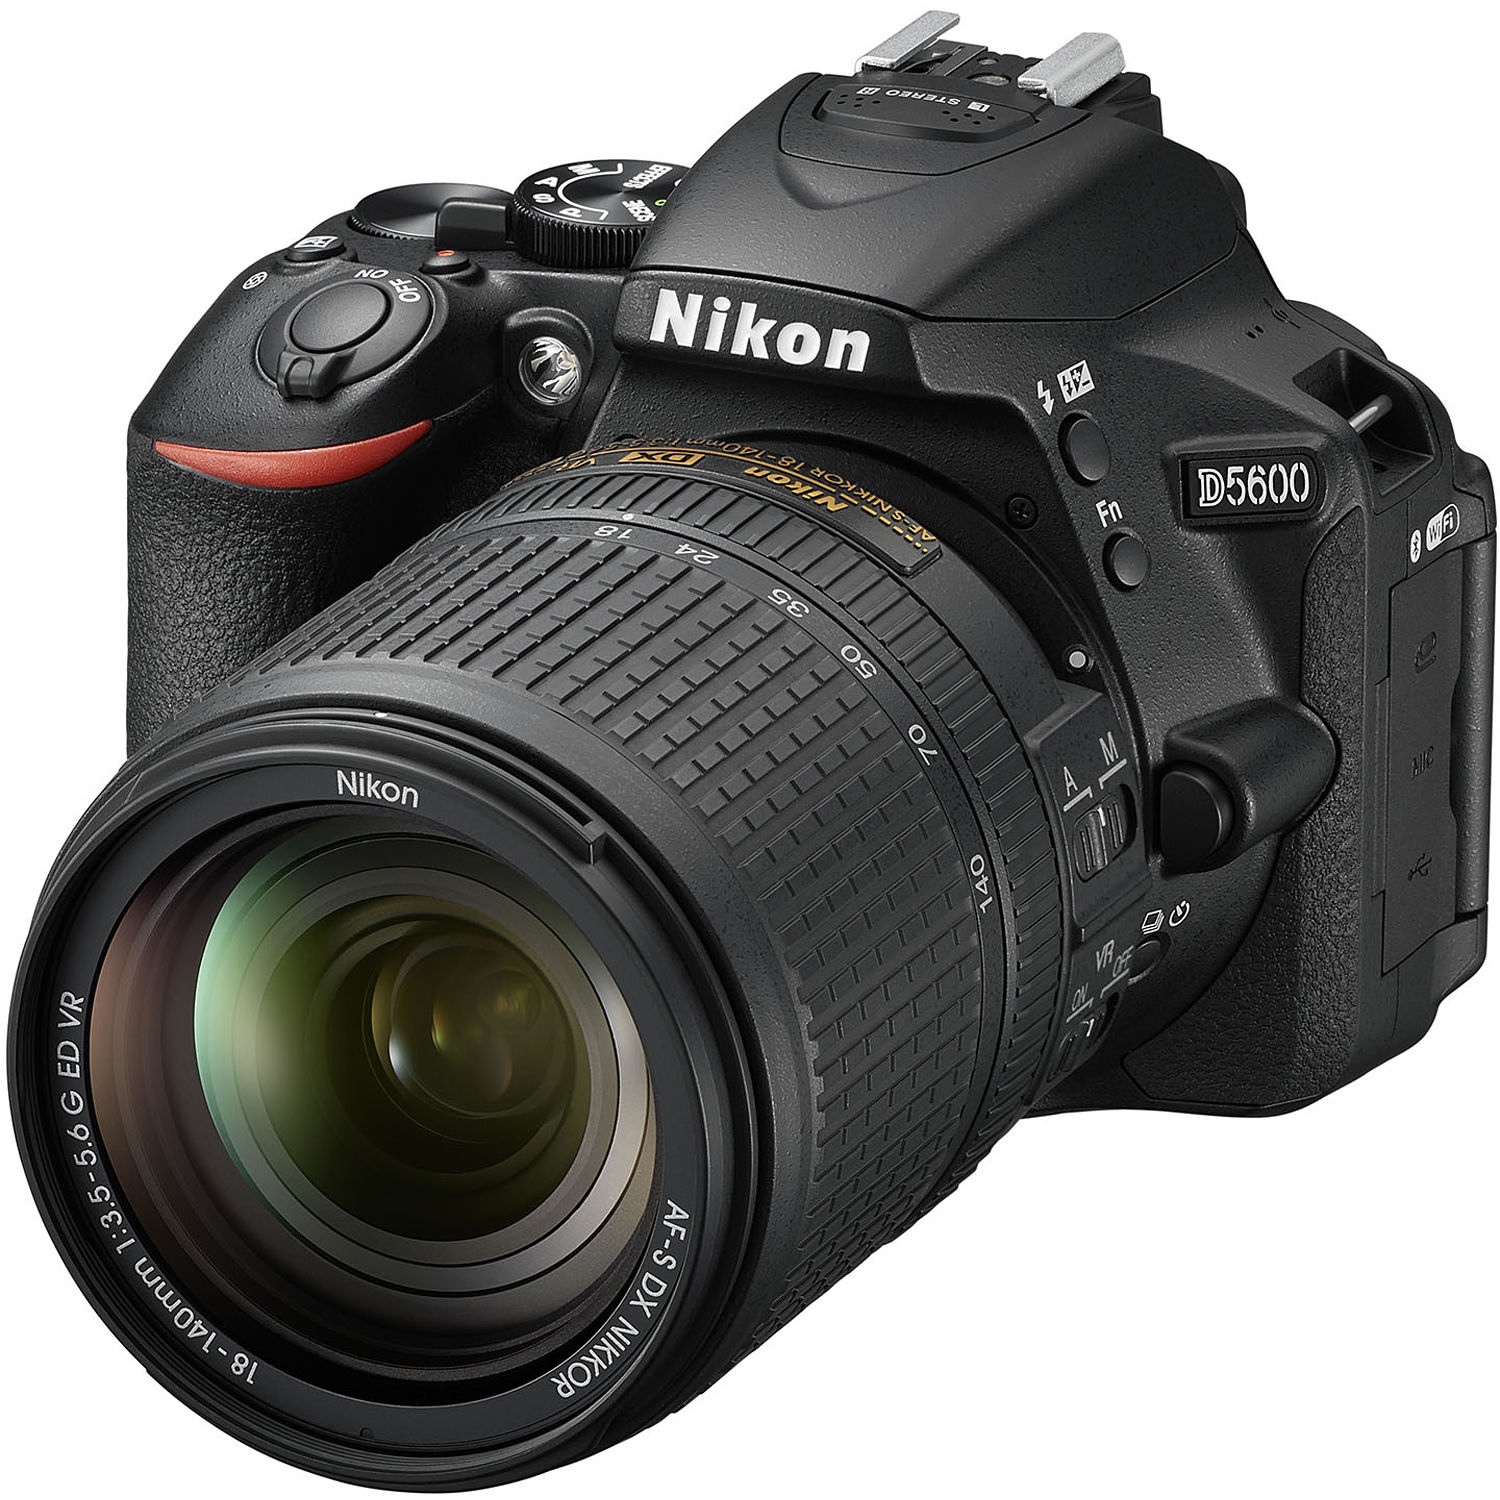 Nikon D5600 Digital Camera 18-140mm VR Kit